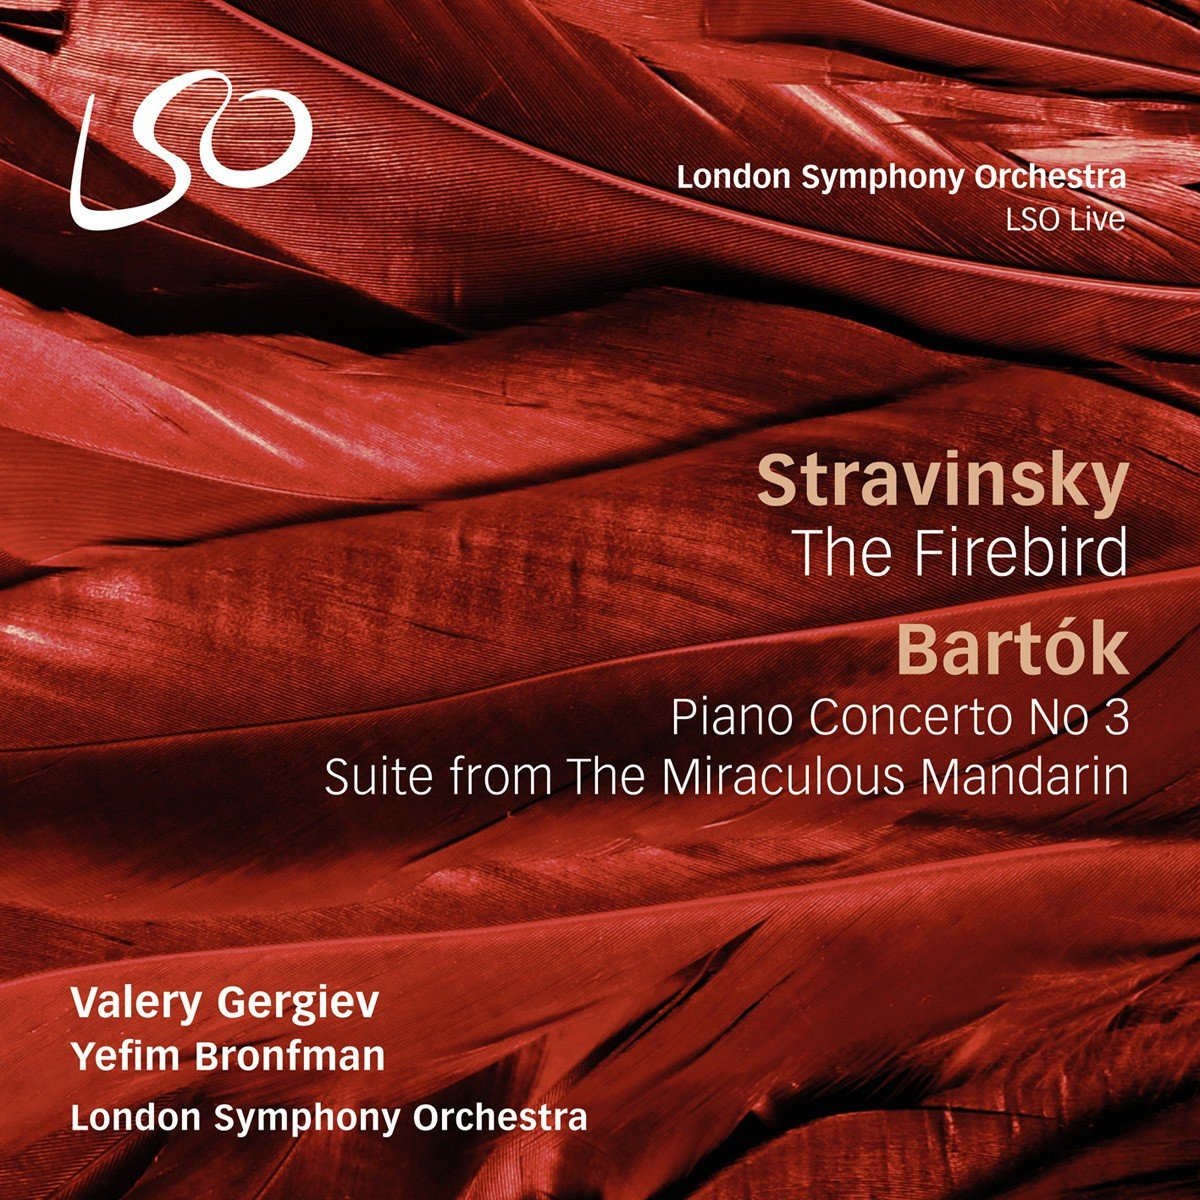 Stravinsky: The Firebird; Bartok: Piano Concerto No.3 by LSO LIVE